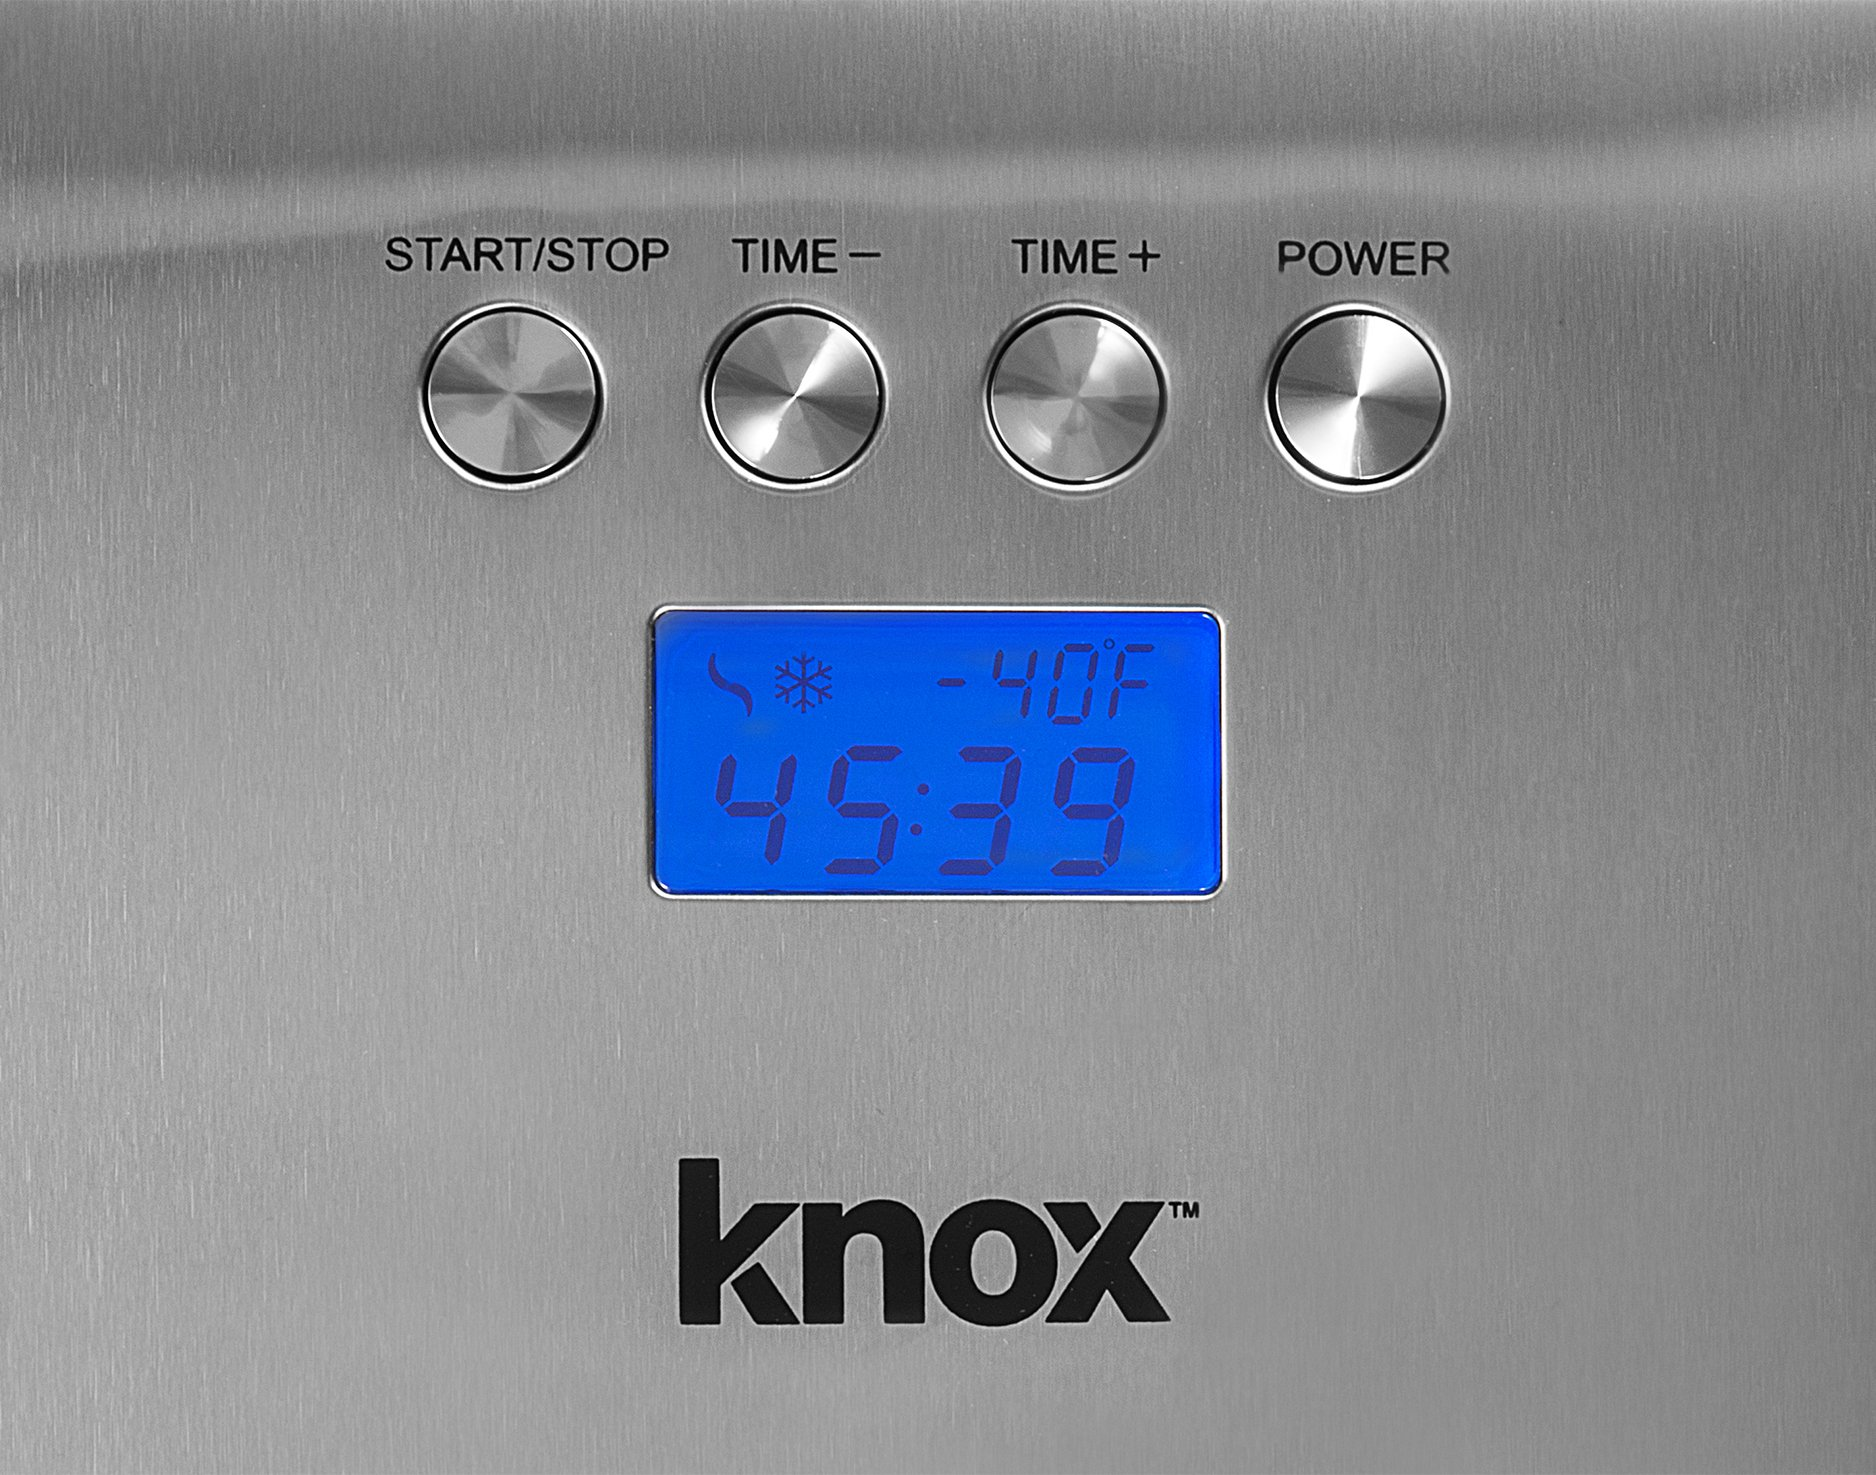 Knox Automatic Ice Cream Maker - Makes Sorbet, Gelato and Frozen Yogurt Without ''Freezer Bowl'' - Commercial Grade Compressor - 1.5 Quart Bowl by Knox (Image #5)